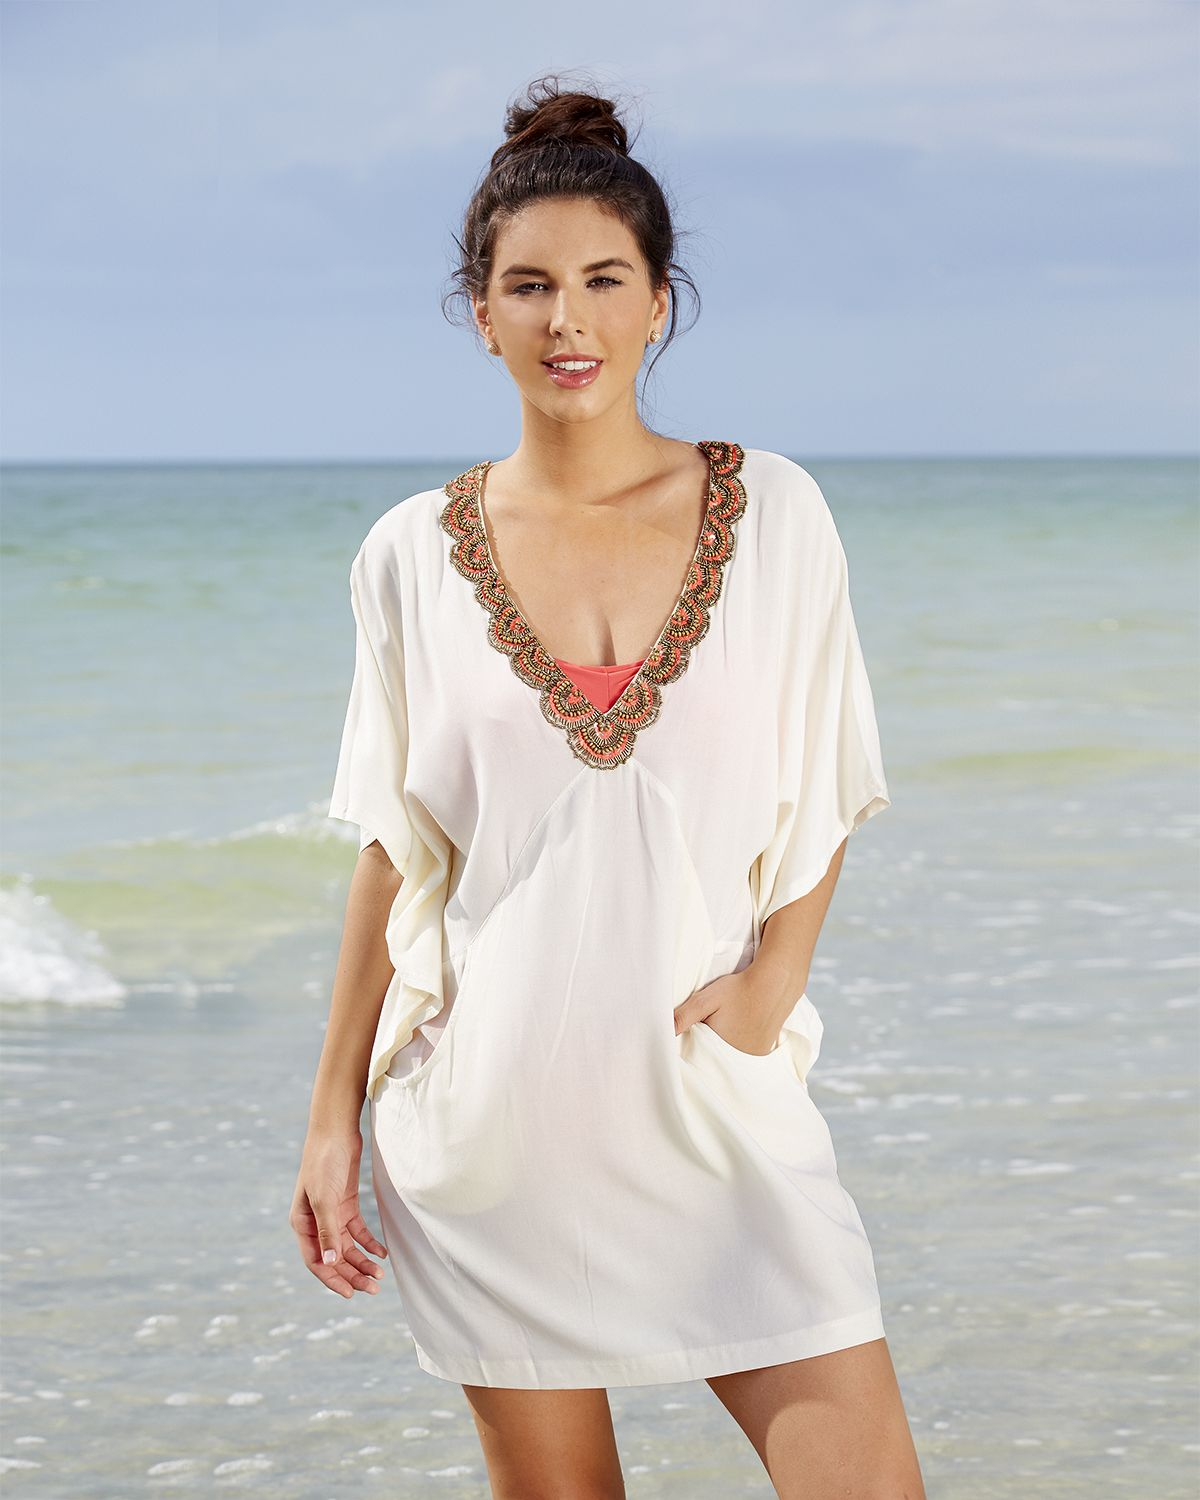 a98906a727 Wearabouts Womens Wow Factor Tunic Beach Swimsuit Cover Up #ForeverFlorida